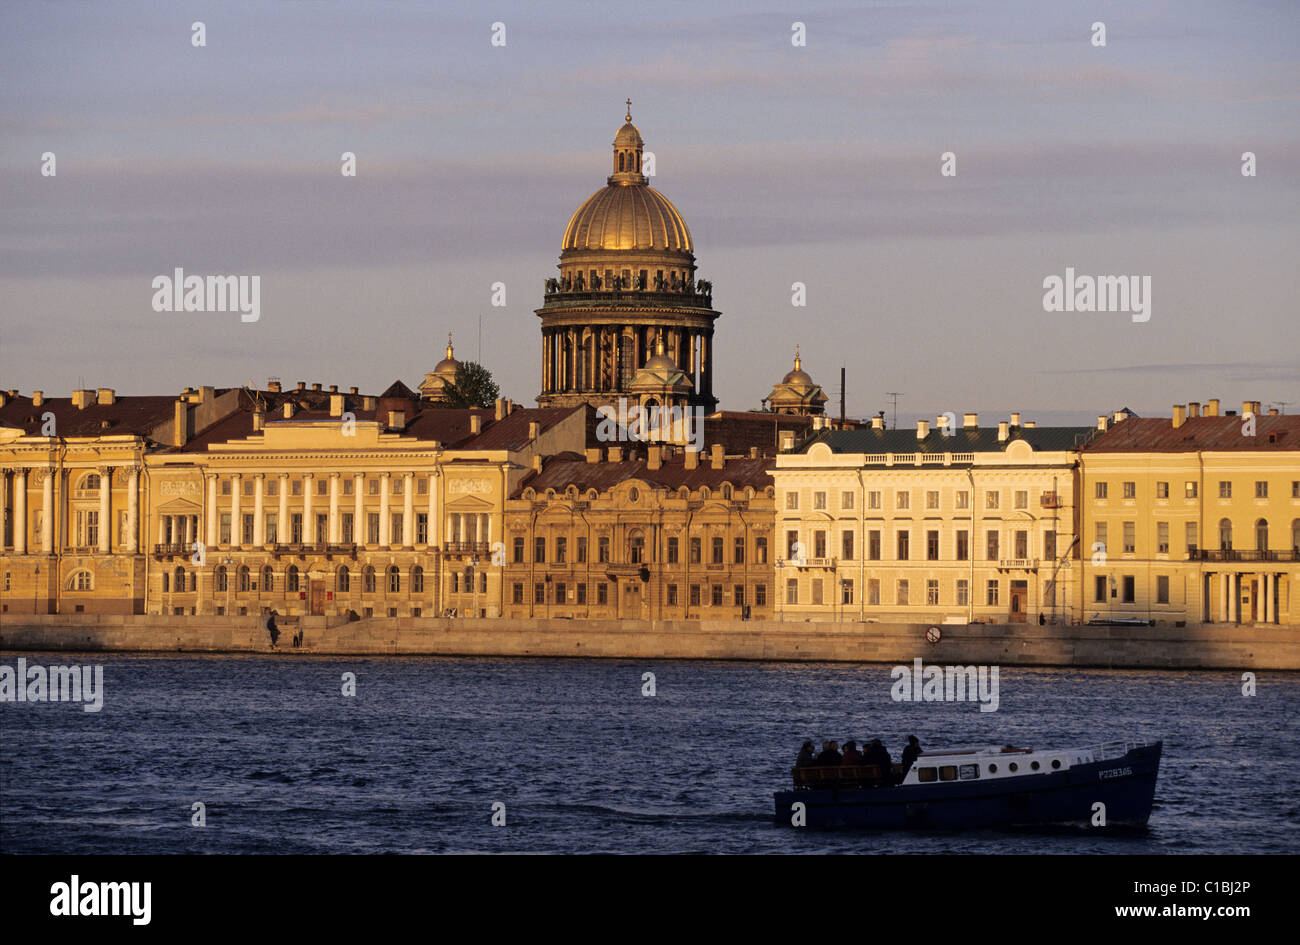 Russia, Saint Petersburg, St-Isaac Cathedral and the Neva river quay during the Nuits Blanches events (Sleepless - Stock Image